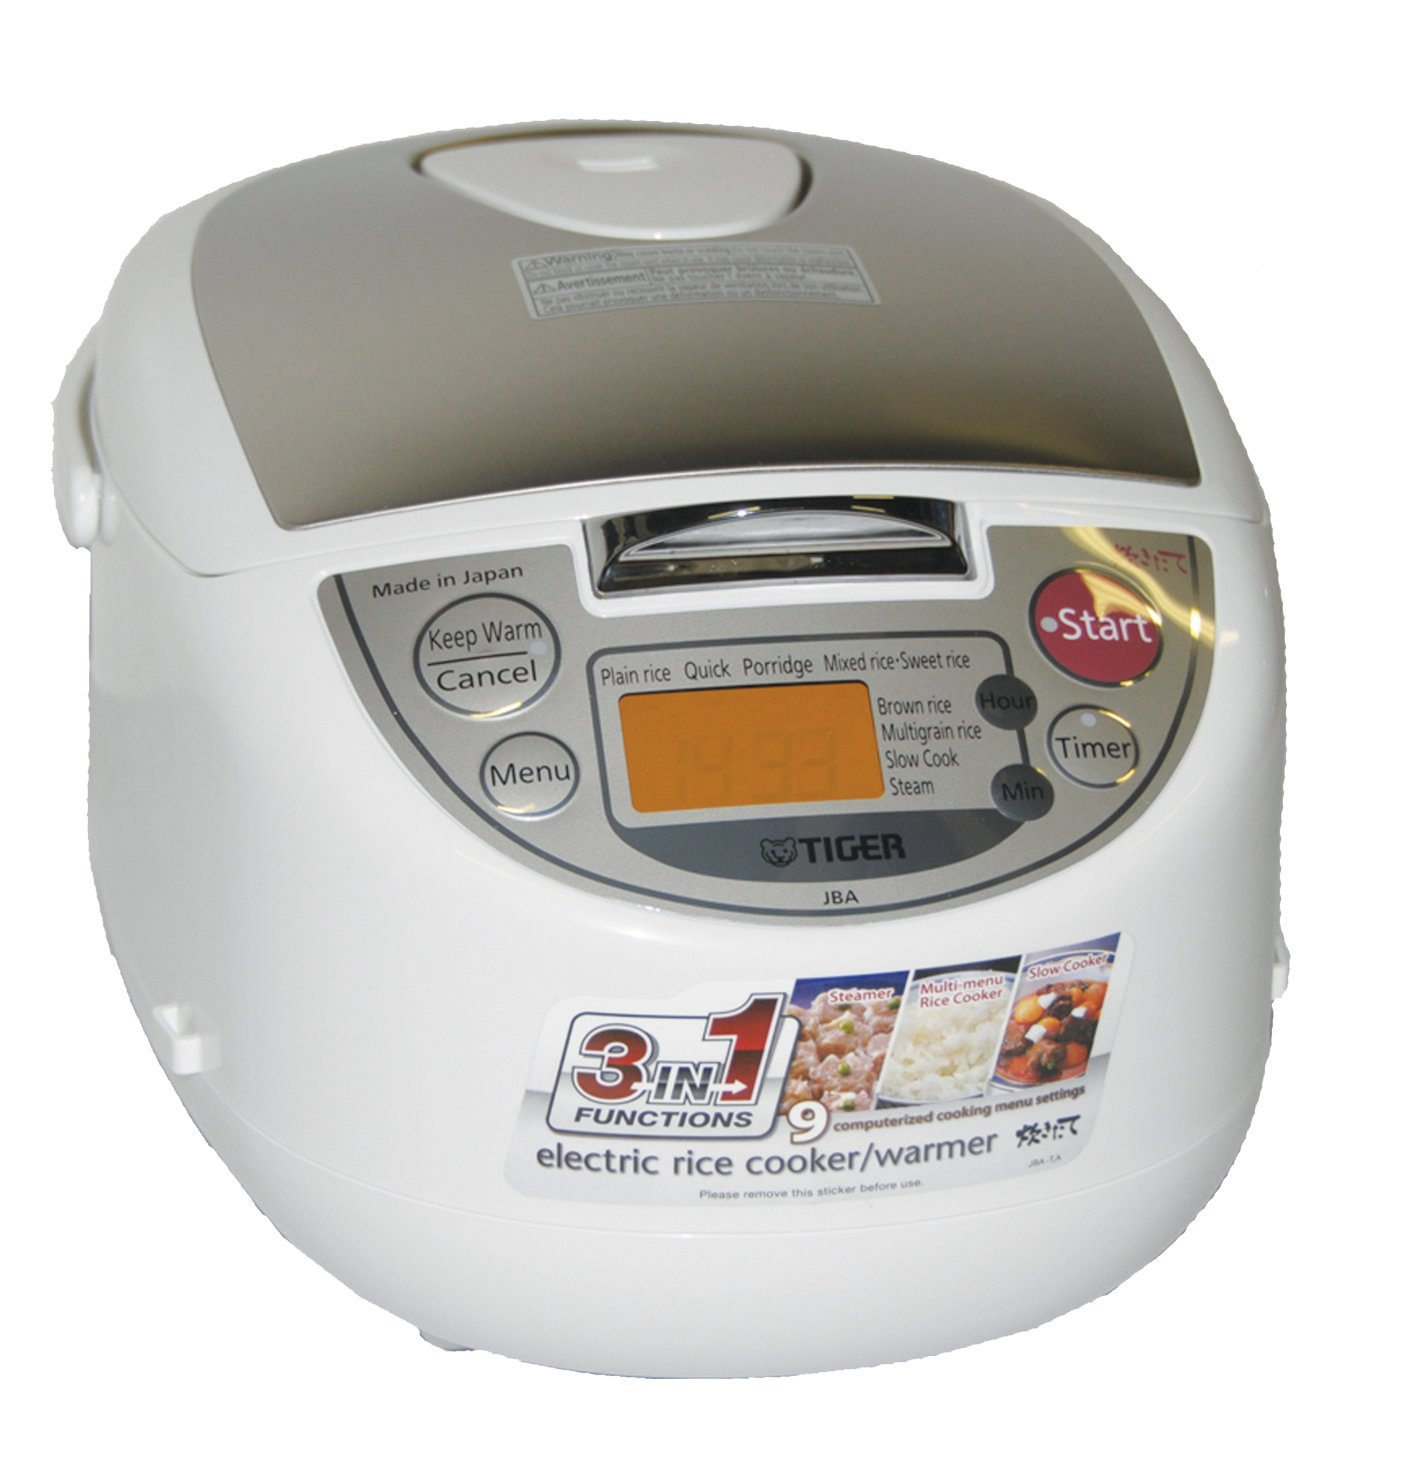 Tiger JBA-T10U 5.5 cups Microcomputer Controlled Rice Cooker- Made in Japan